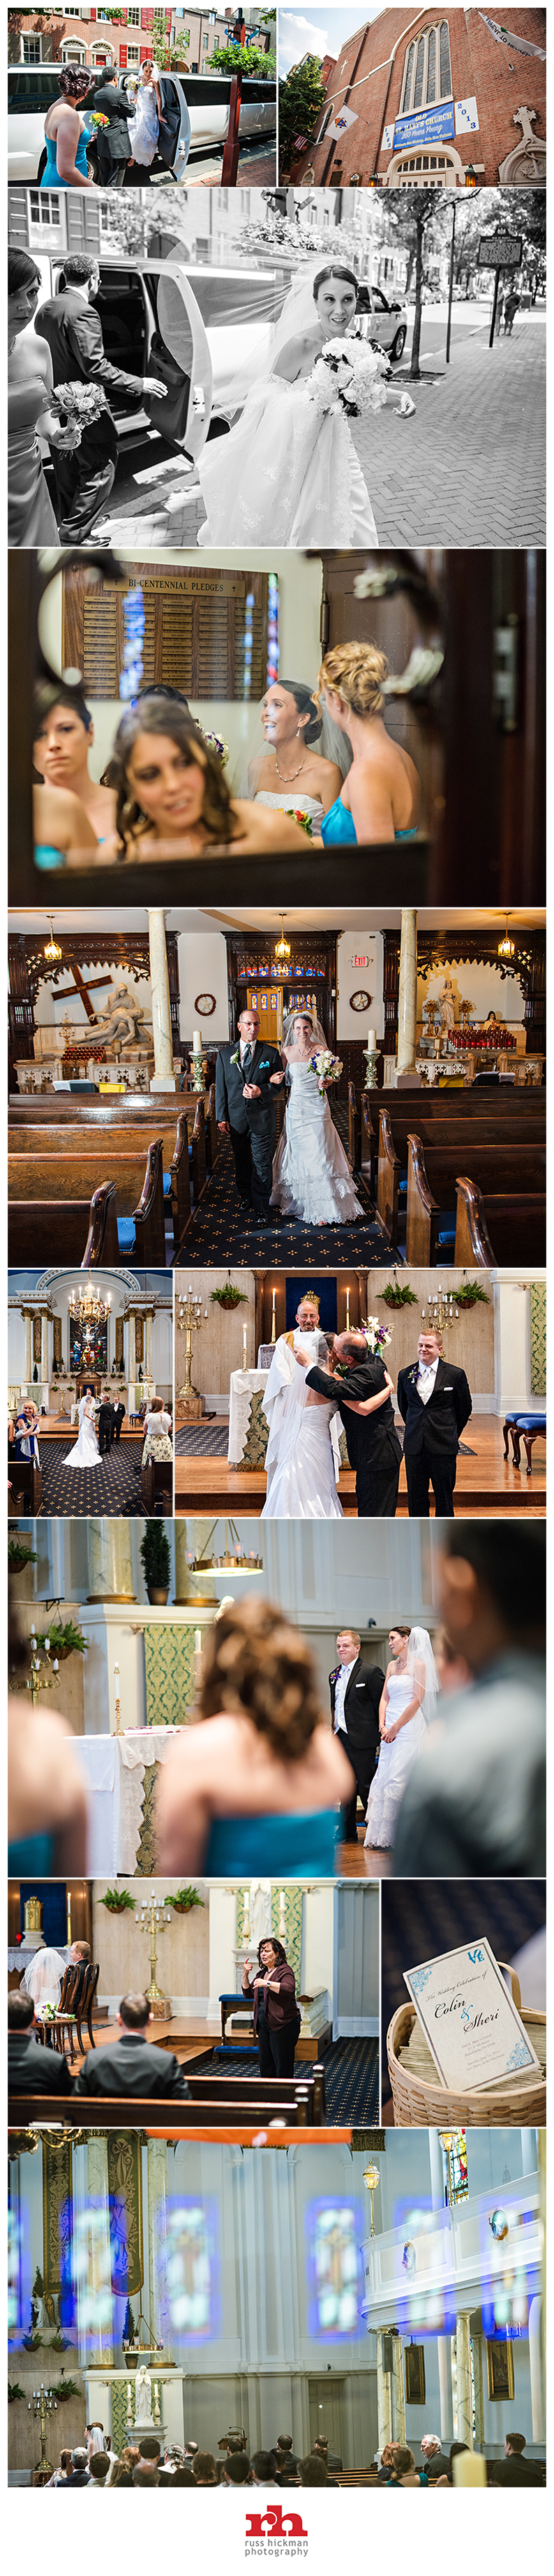 Philadelphia Wedding Photographer SCWB003